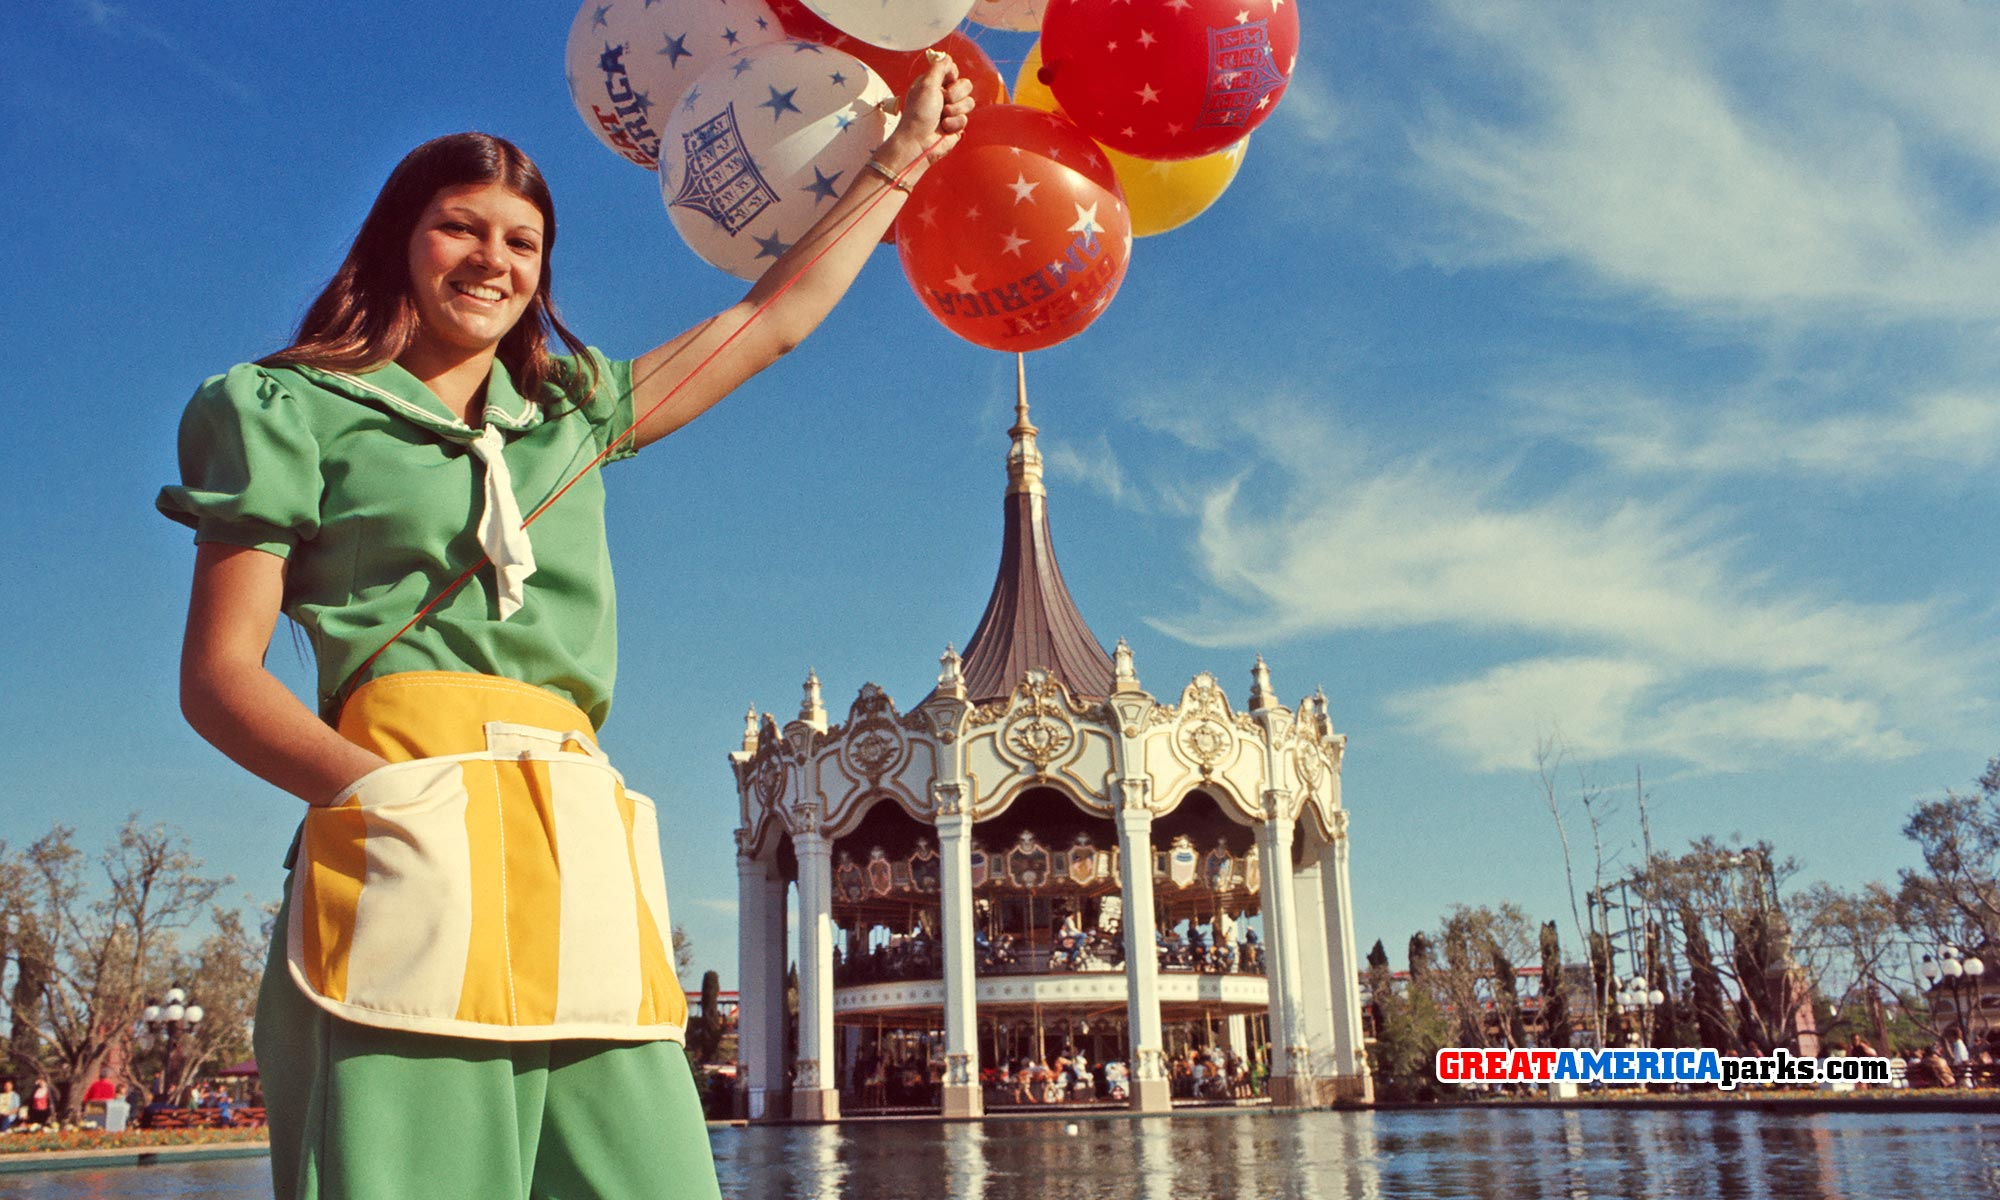 Balloon vendor in Carousel Plaza at Marriott's Great America